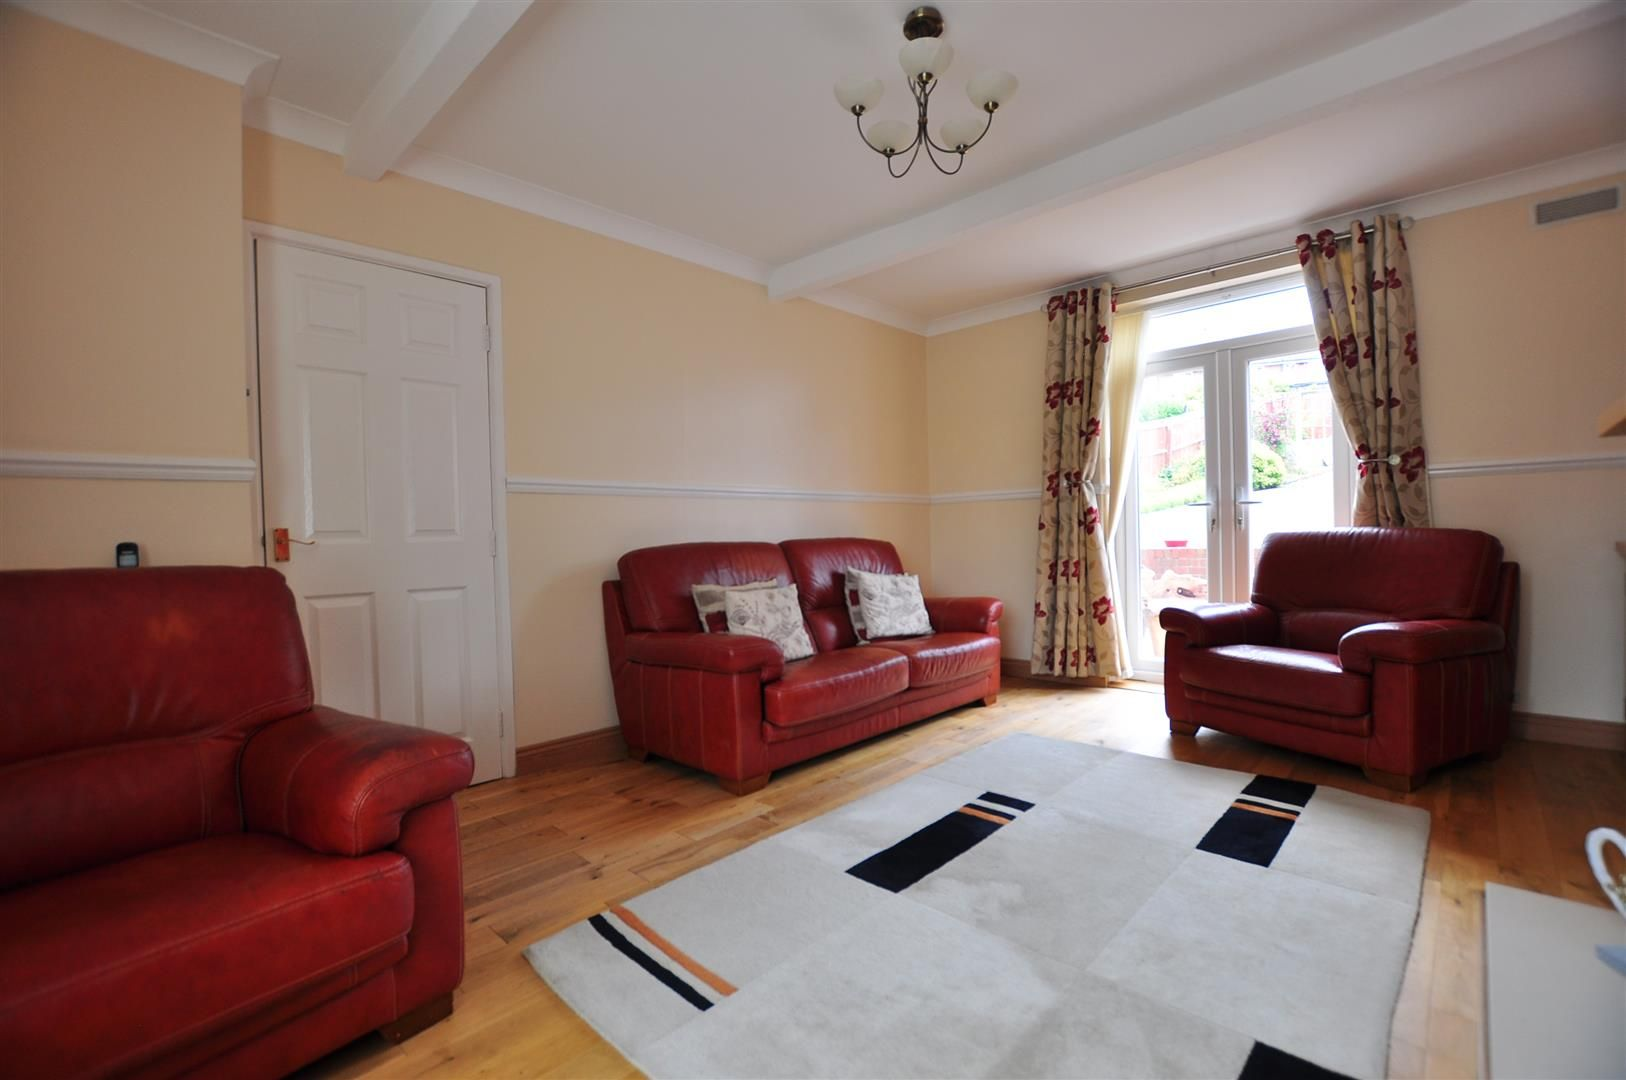 3 bed semi-detached for sale in Lower Gornal  - Property Image 5